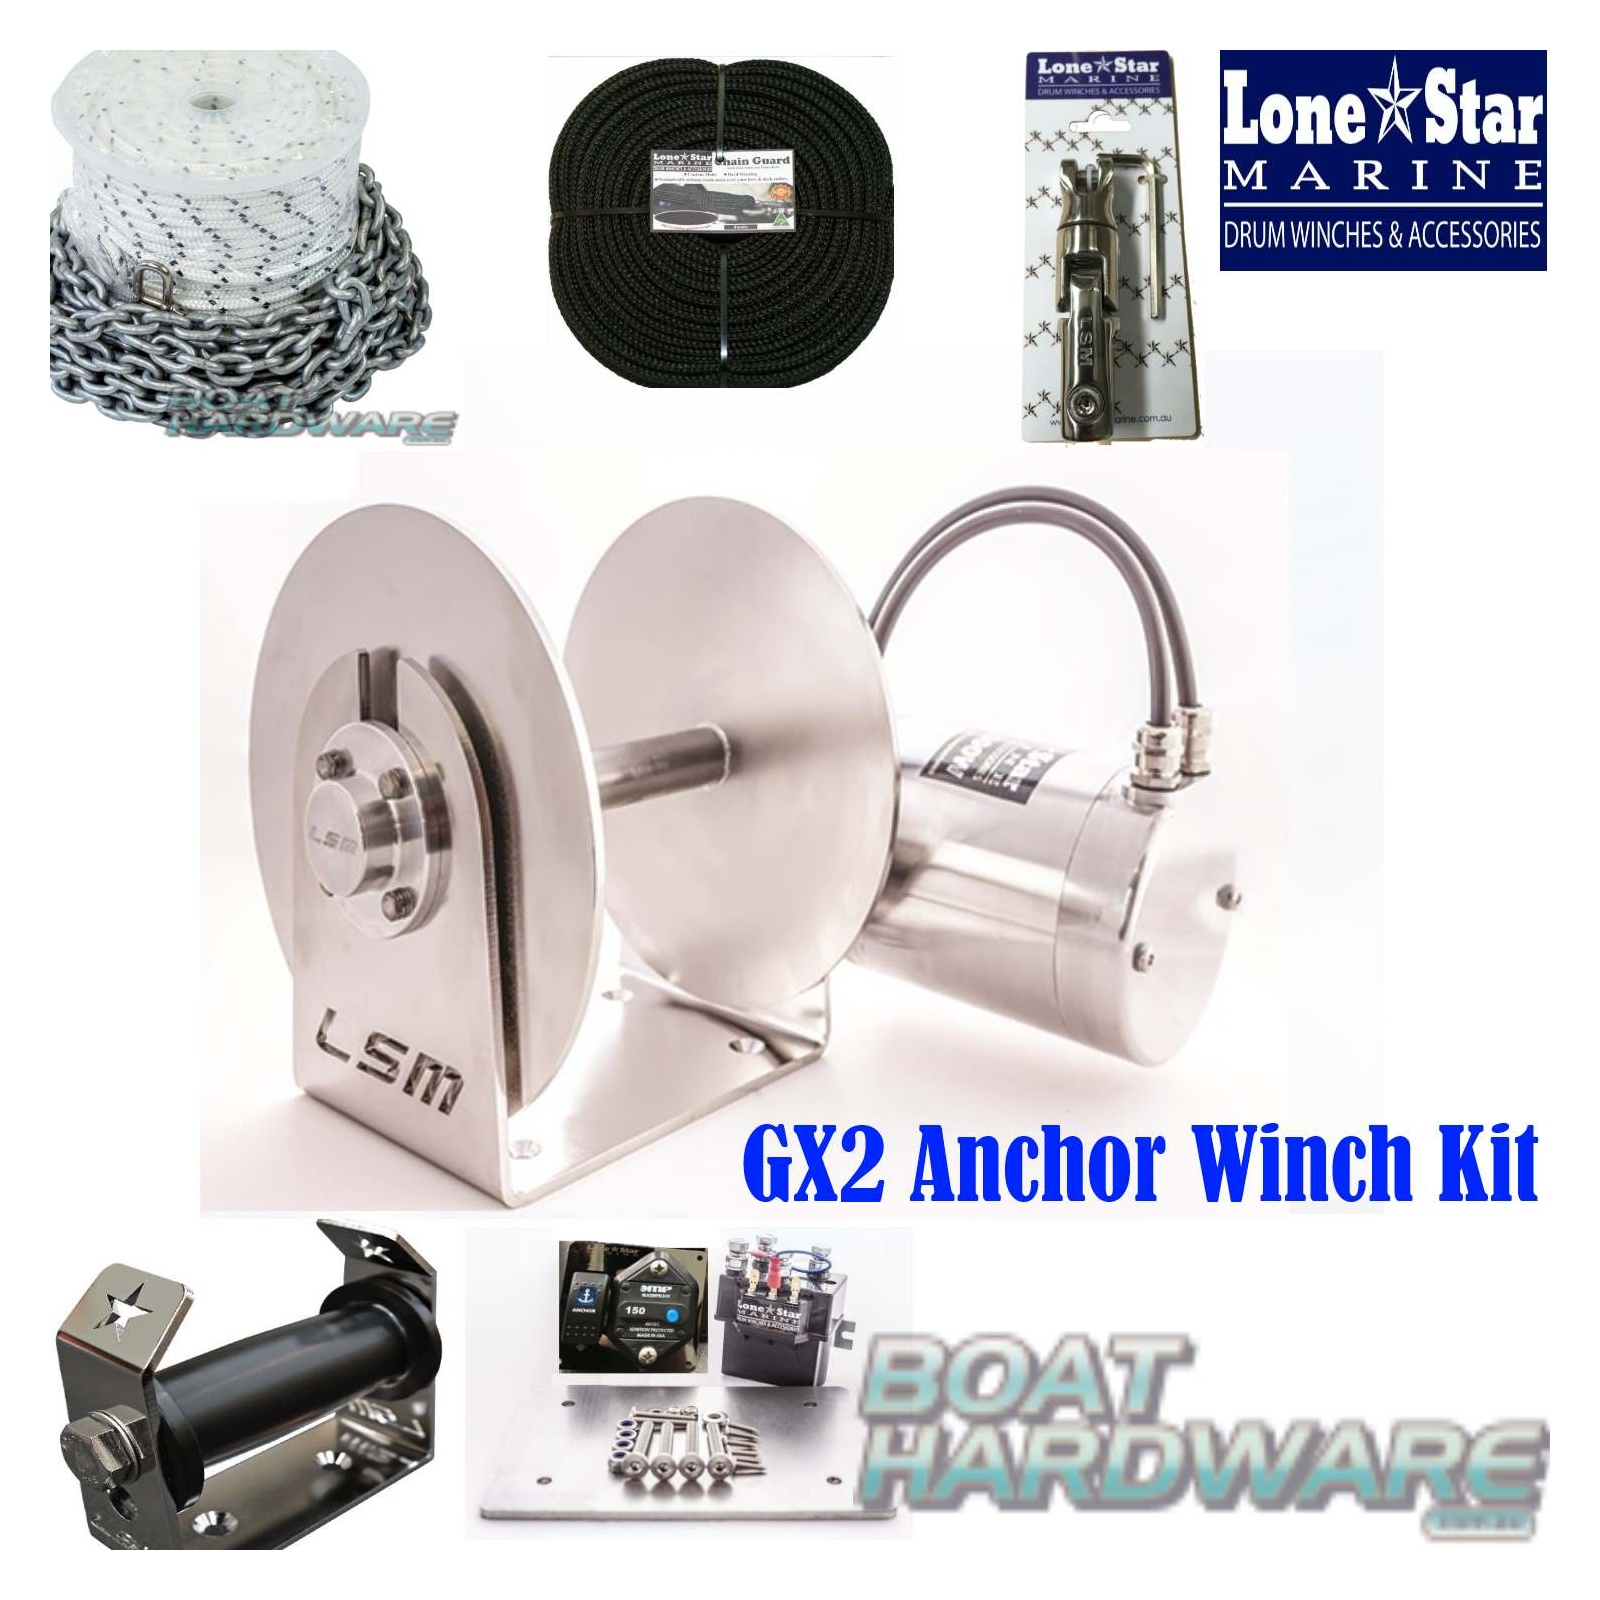 GX2ComboKit90m8mm gx2 1000w anchor winch combo 90m x 8mm kit lone star lone star anchor winch wiring diagram at gsmx.co